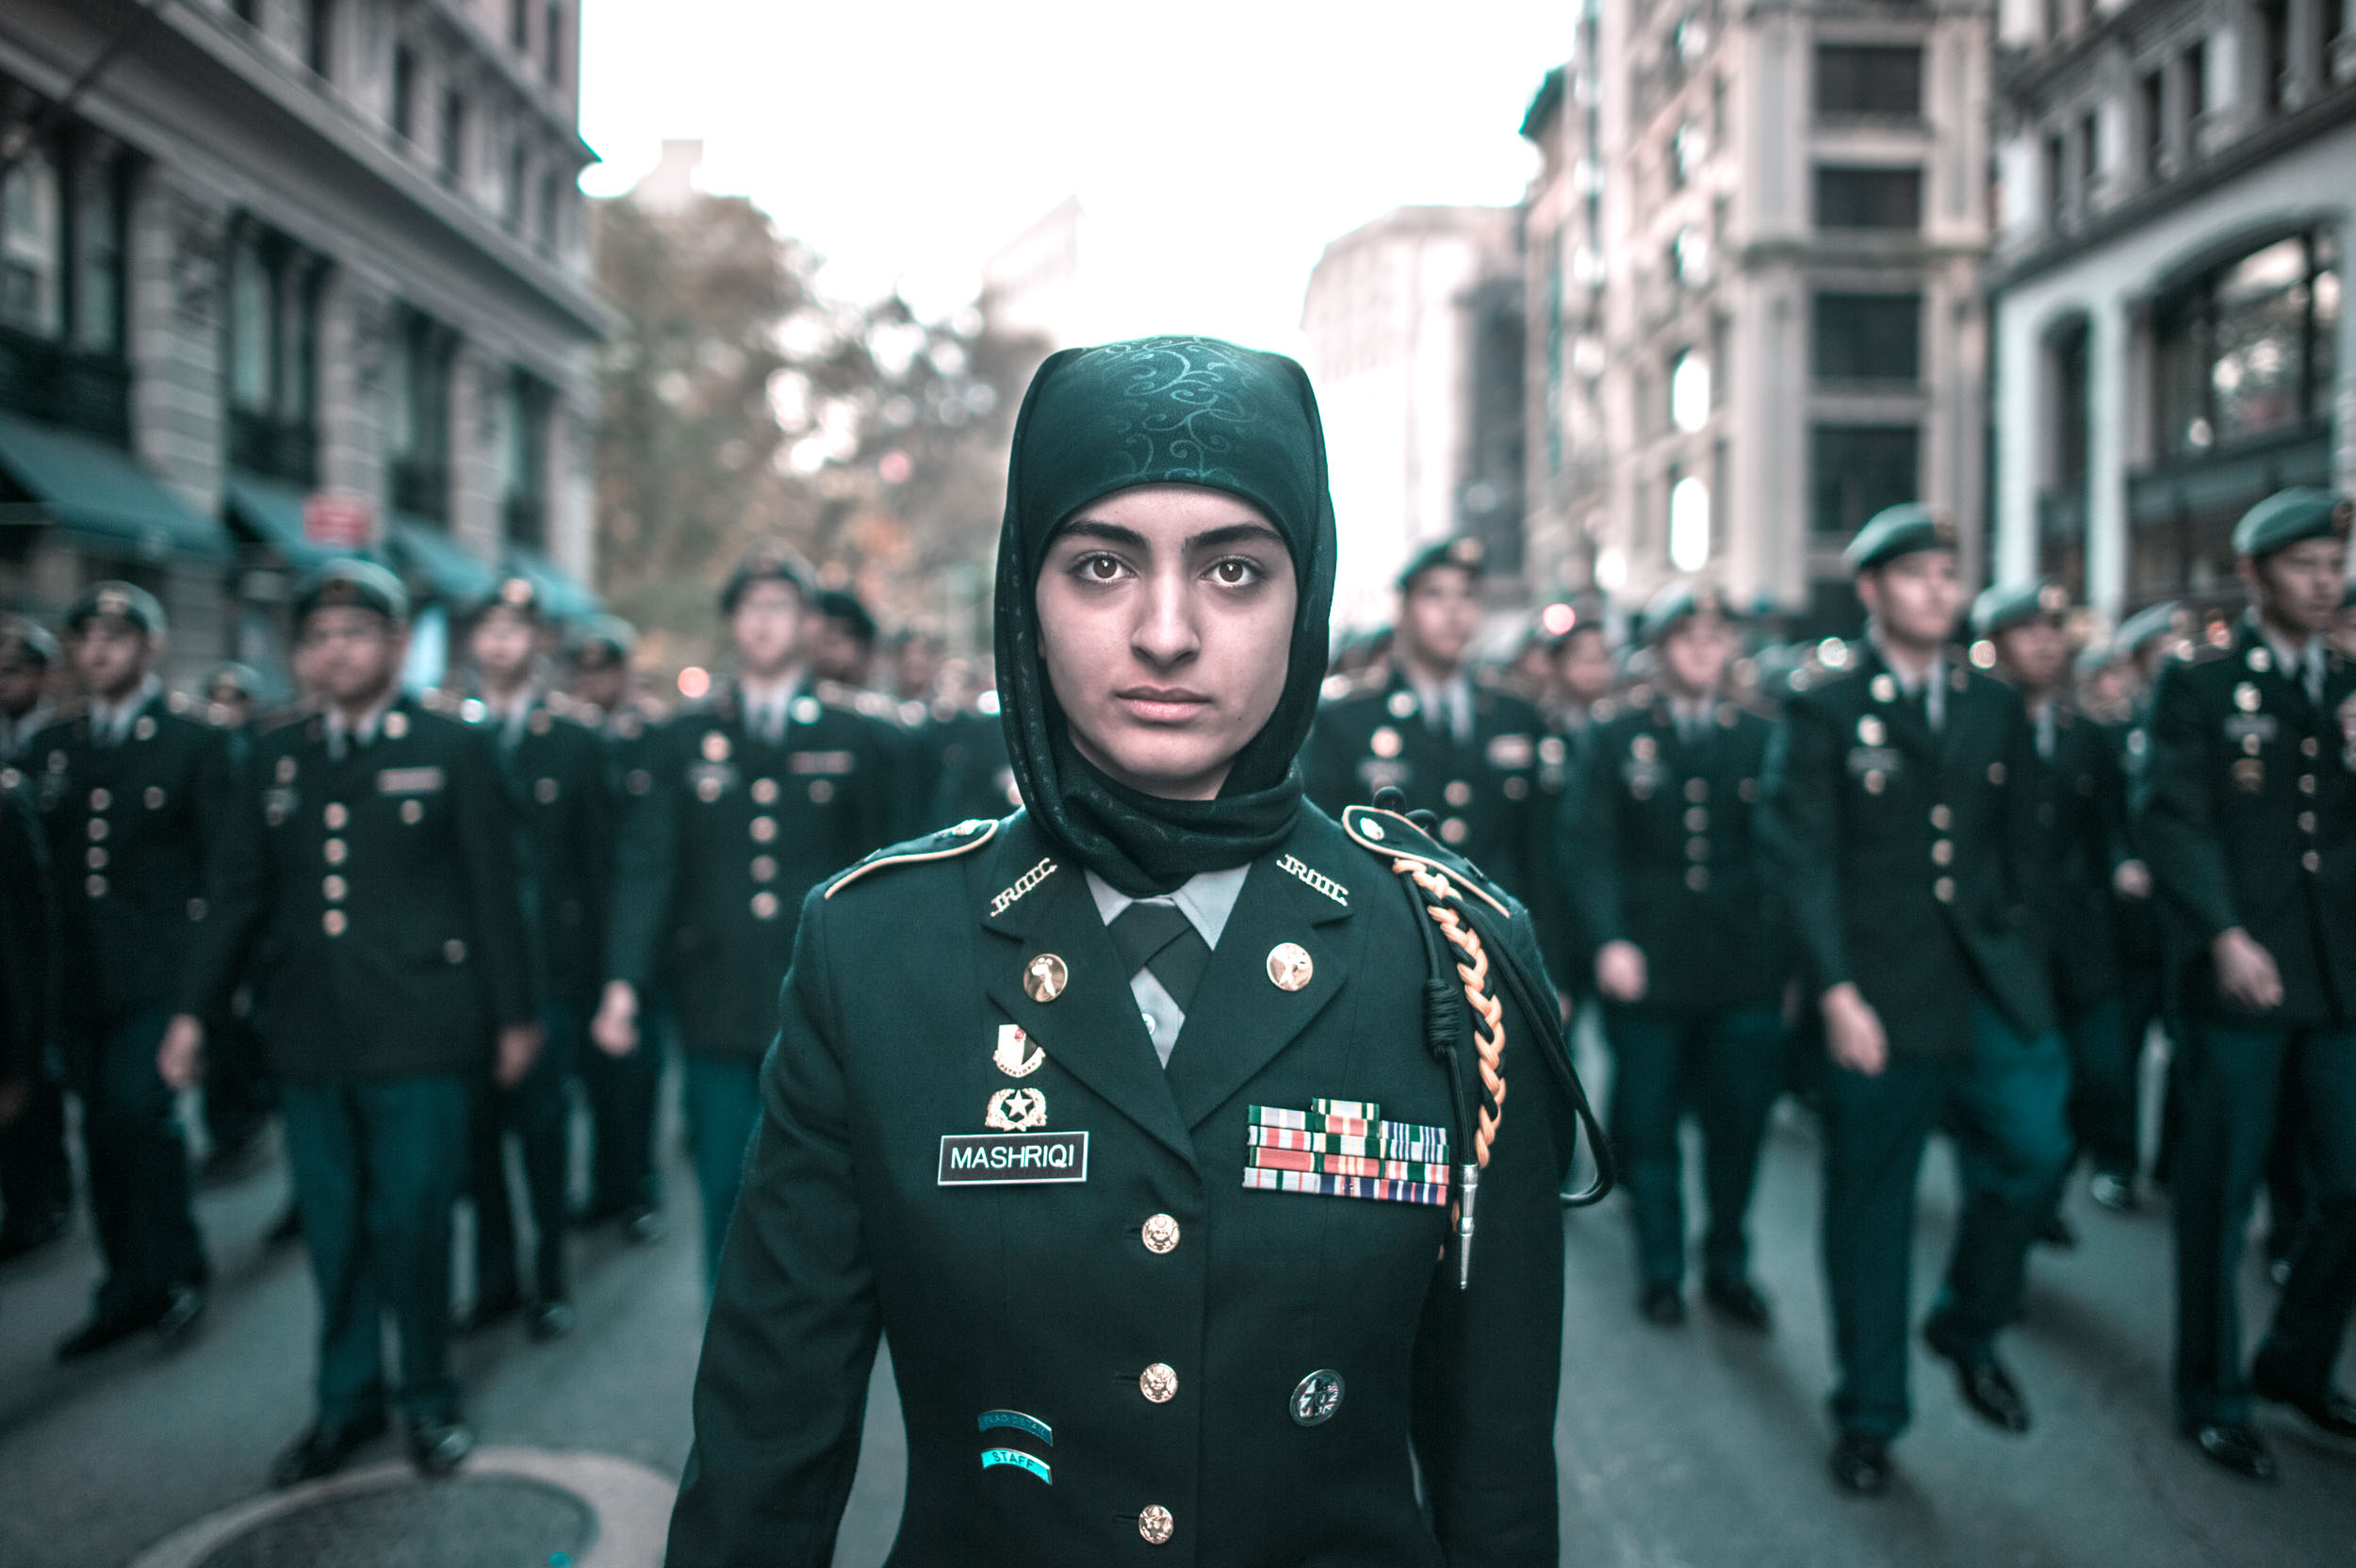 A young Muslim member of the JROTC leads her class down 5th Avenue on Veteran's Day.